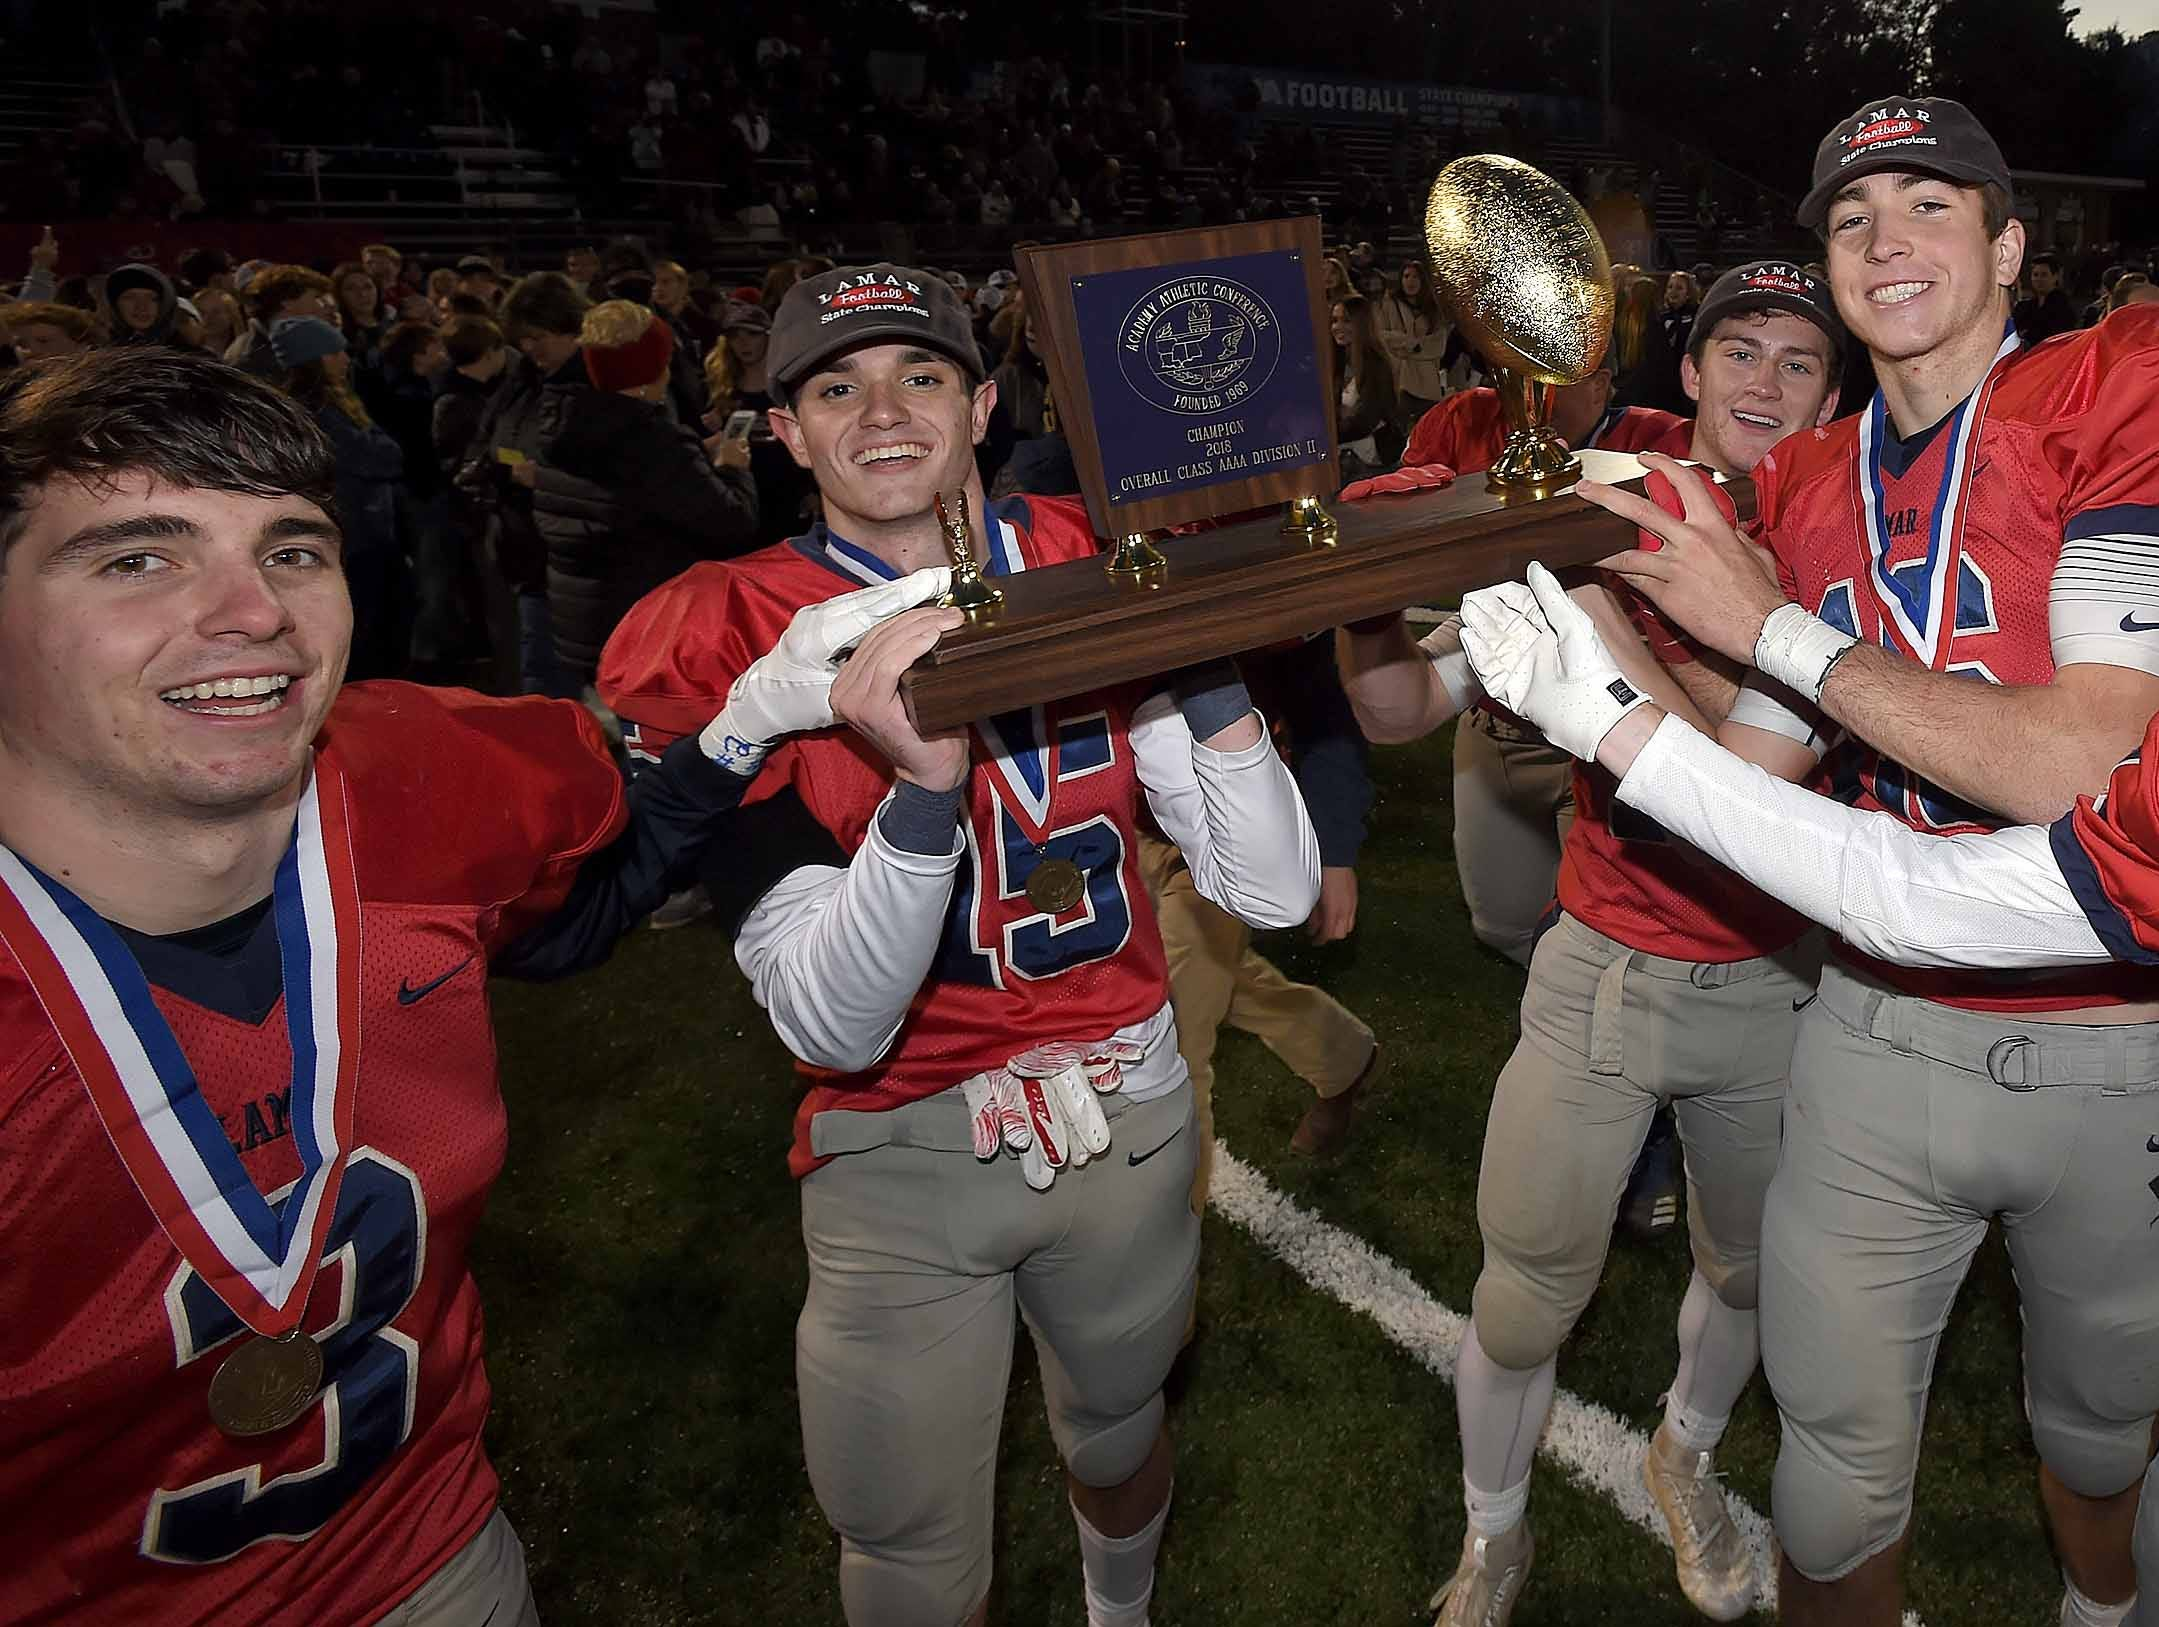 The Lamar School Raiders celebrate with the trophy after beating Simpson Academy on Thursday, November 15, 2018, in the MAIS Class AAAA-D2 Football Championship at Jackson Academy in Jackson, Miss.